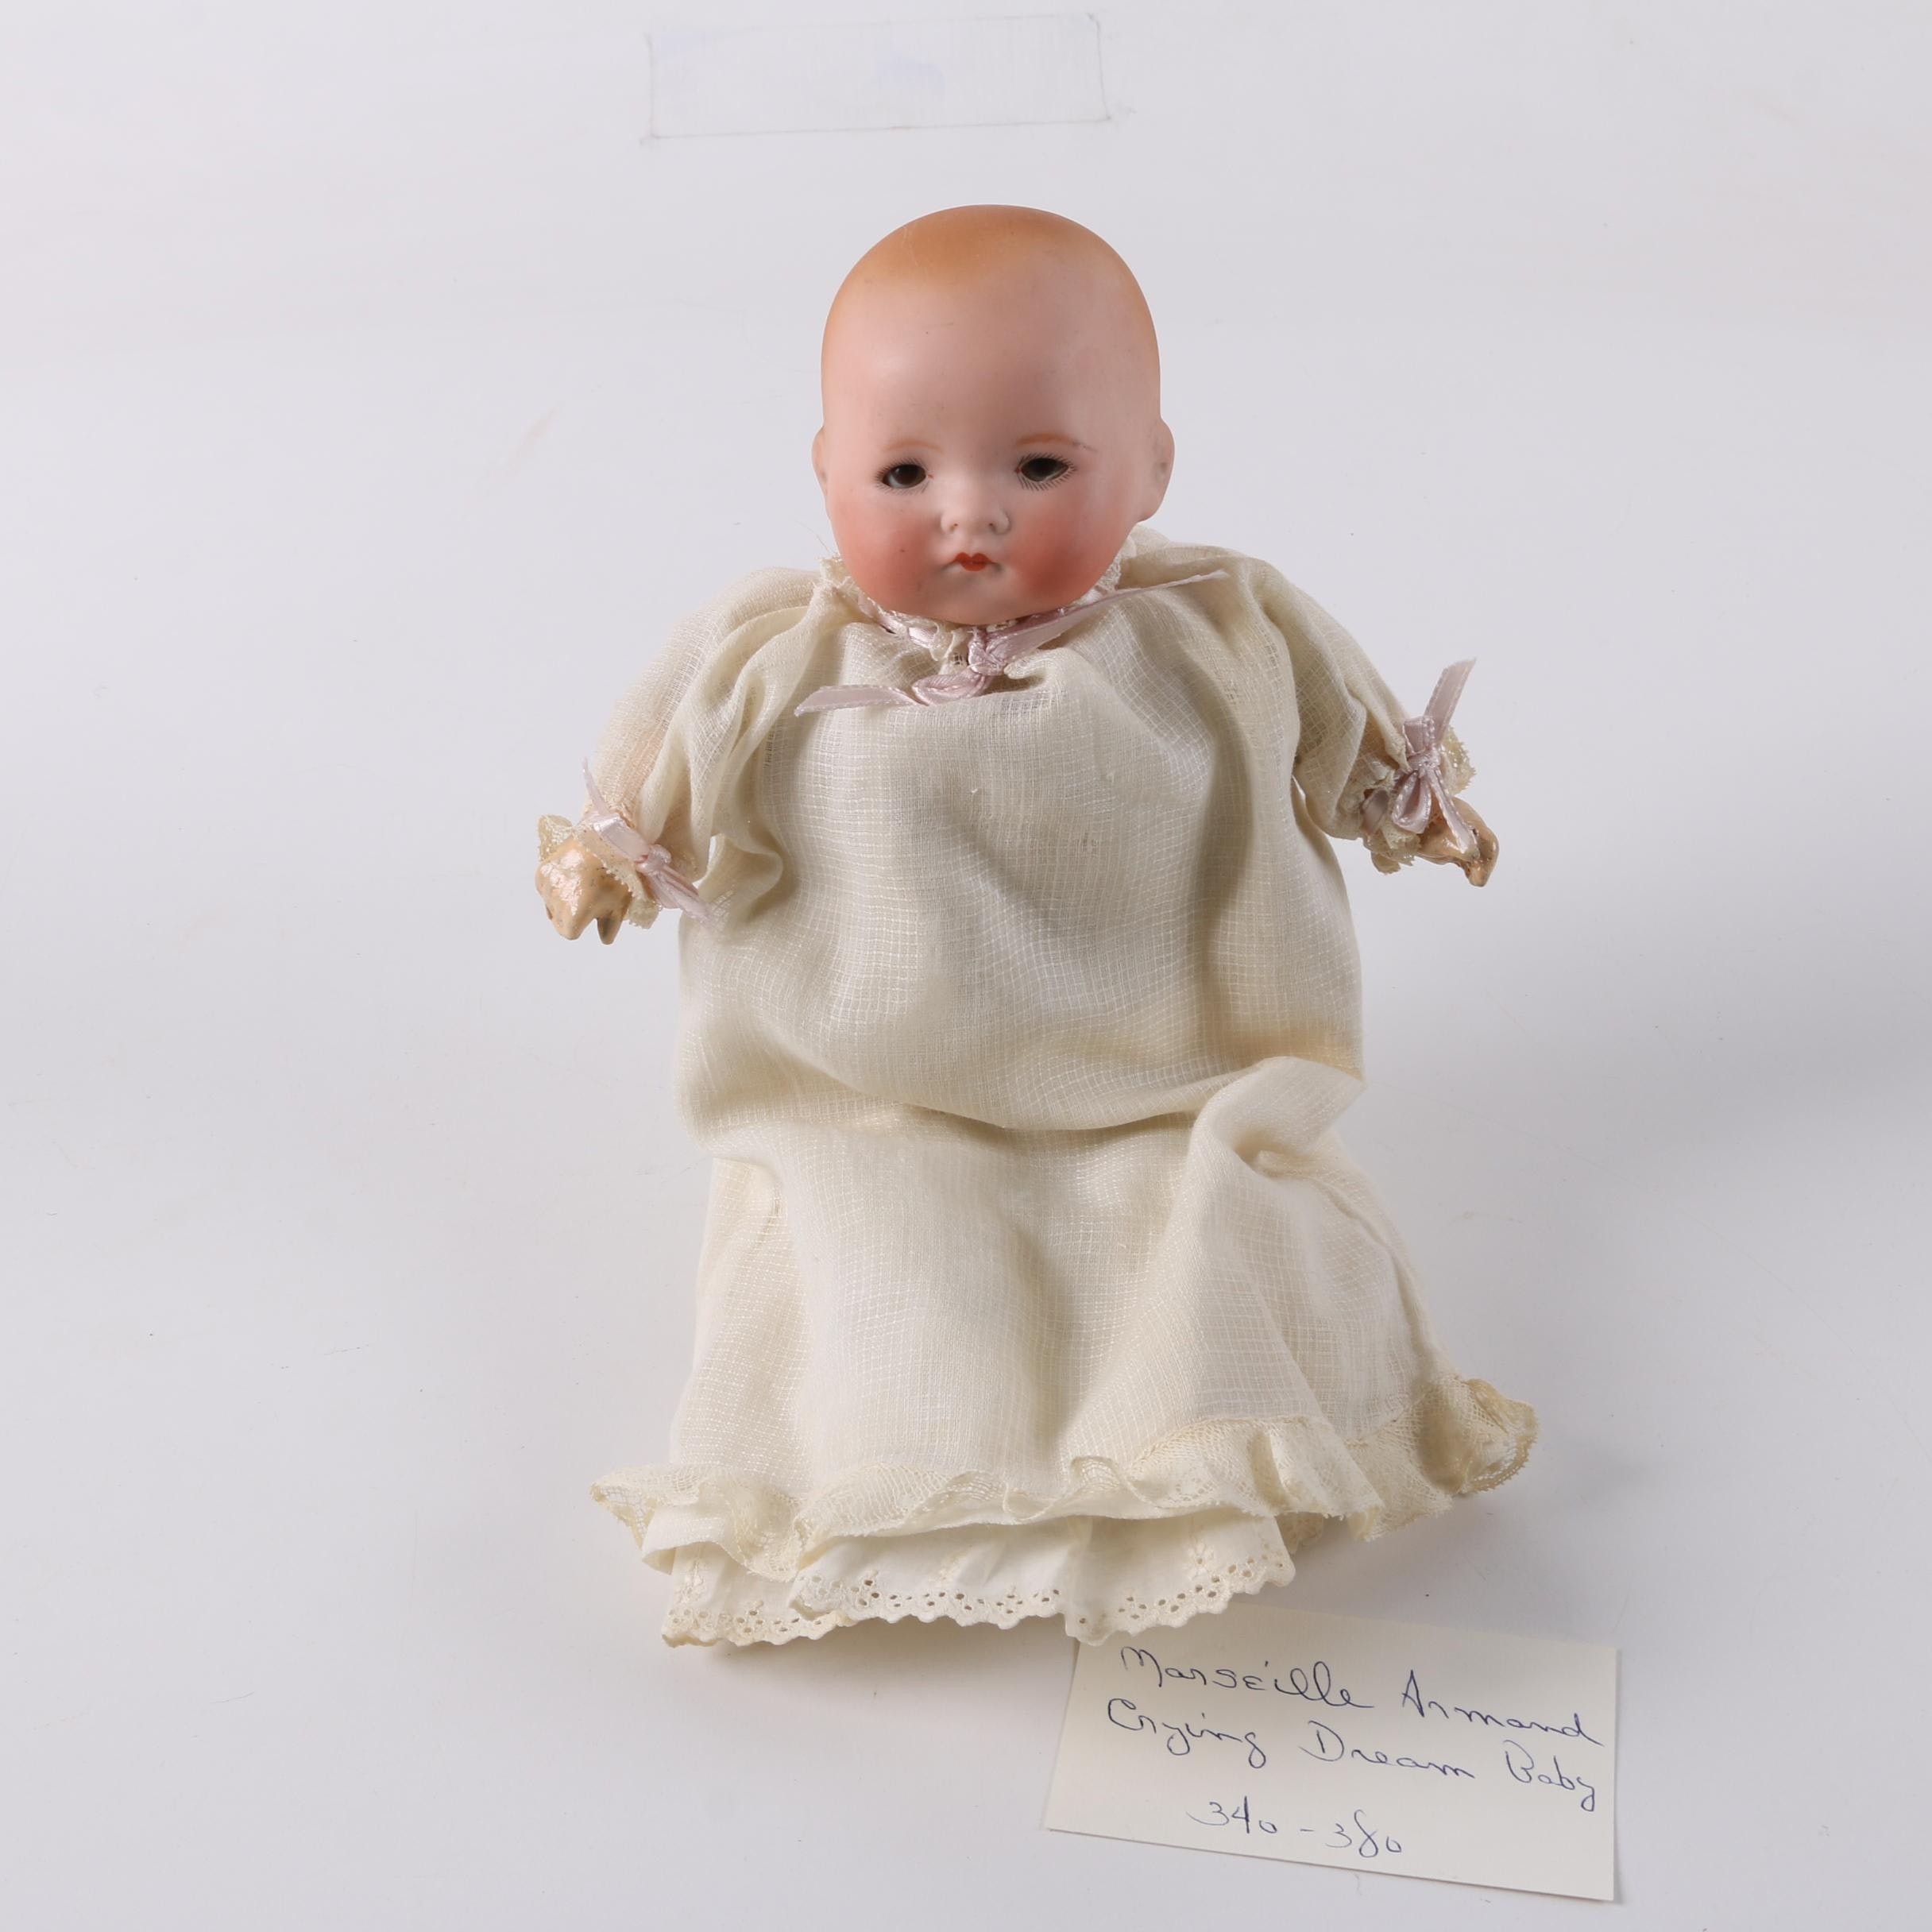 """Antique Armand Marseille """"My Dream Baby"""" Crying Doll"""